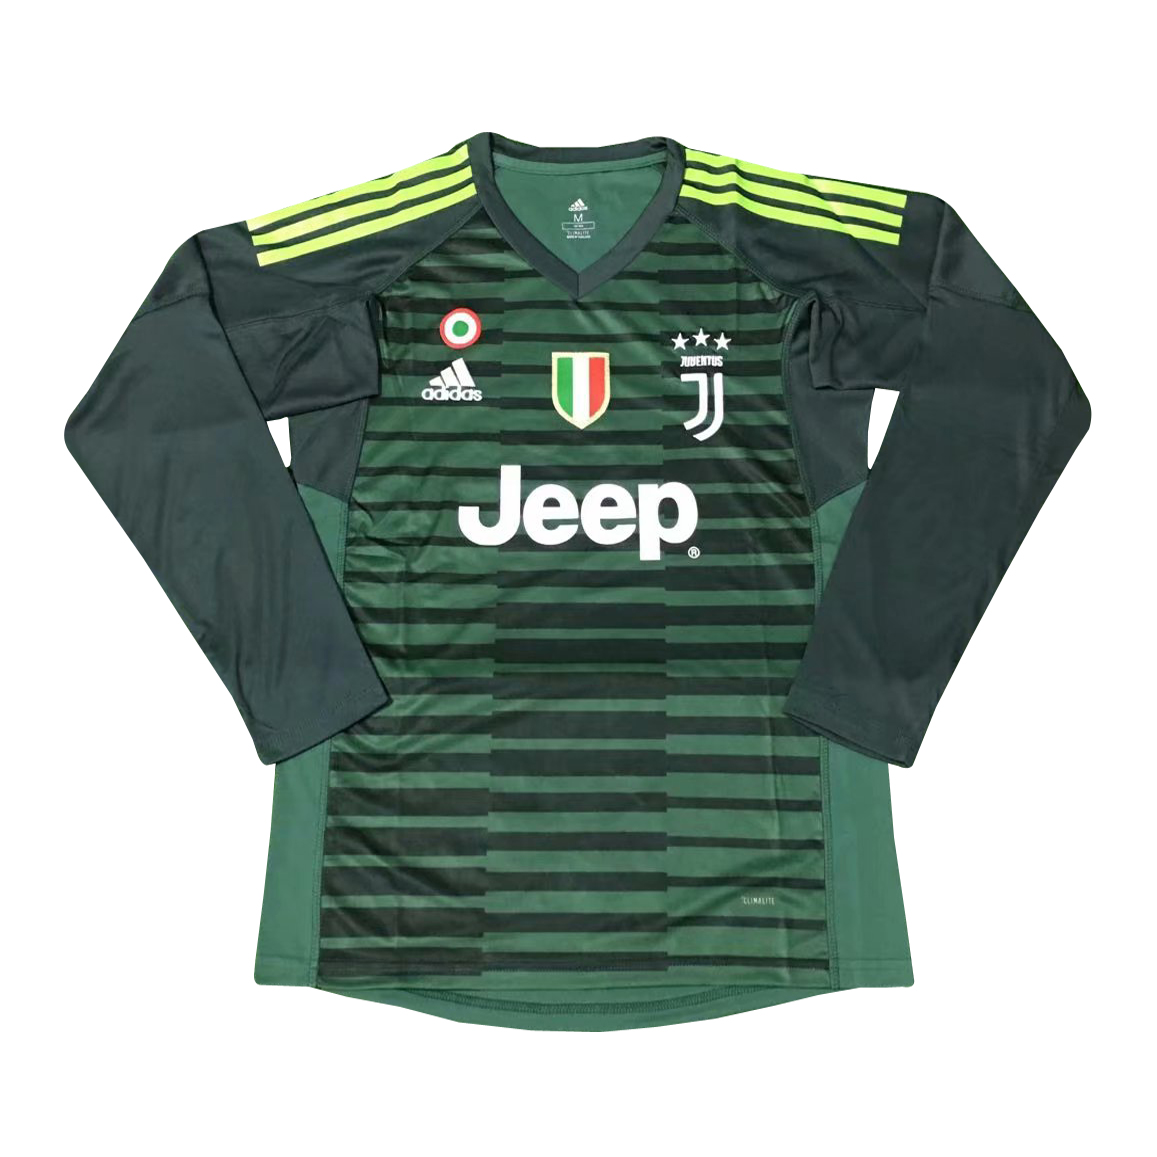 cdfab84af22 US  16.8 - Juventus Goal Keeper Jersey Green Long Sleeve Men s 2018 19 -  www.fcsoccerworld.com